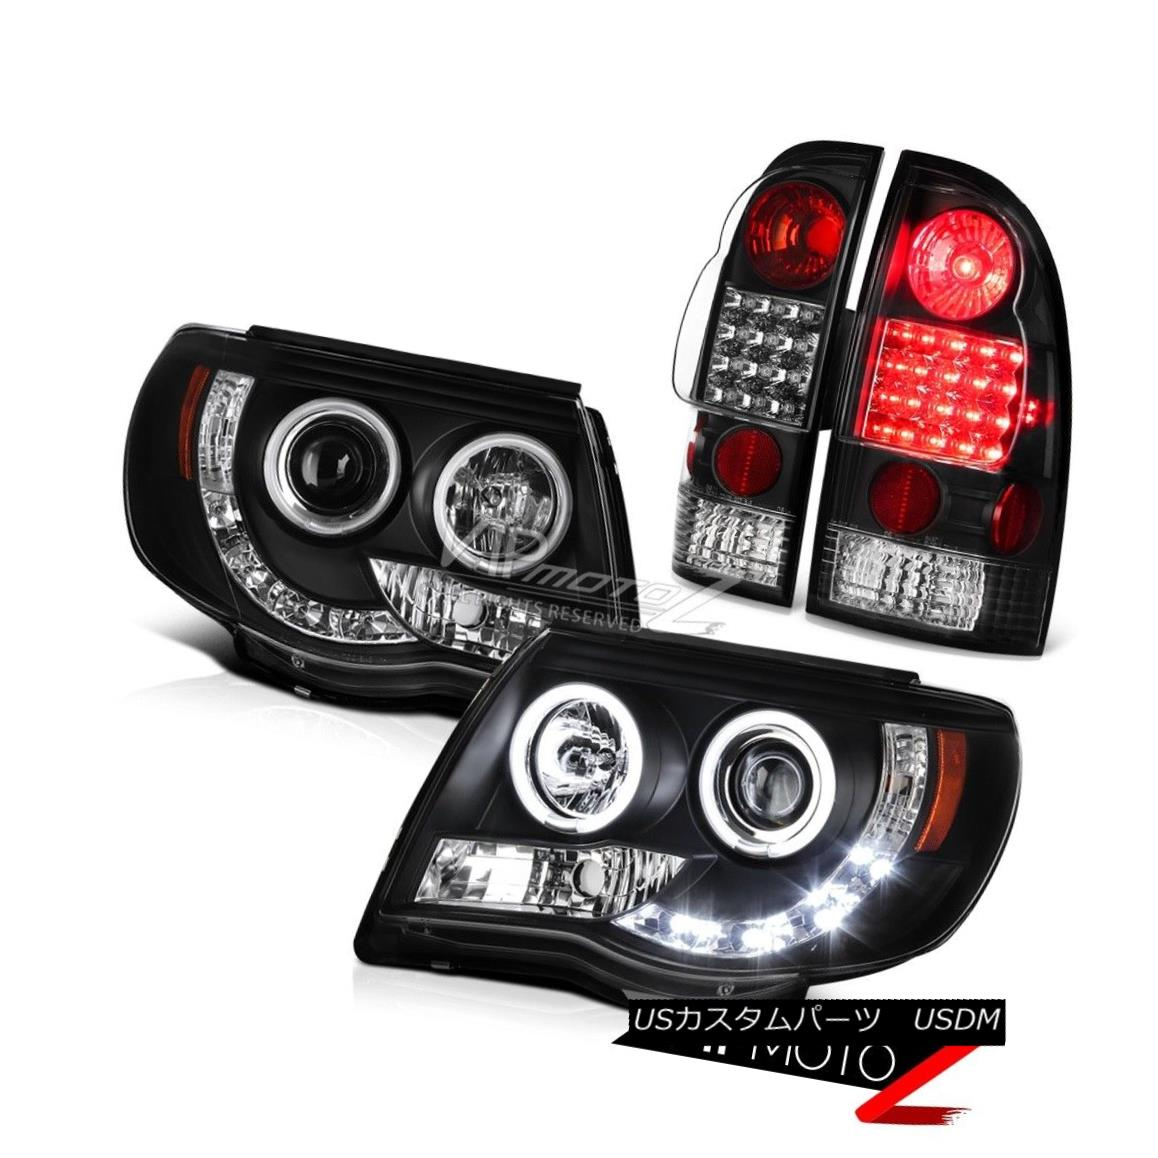 ヘッドライト 2005-2011 Toyota Tacoma 4.0L CCFL Halo LED DRL Headlights Rear Brake Tail Lights 2005-2011 Toyota Tacoma 4.0L CCFL Halo LED DRLヘッドライトリアブレーキテールライト